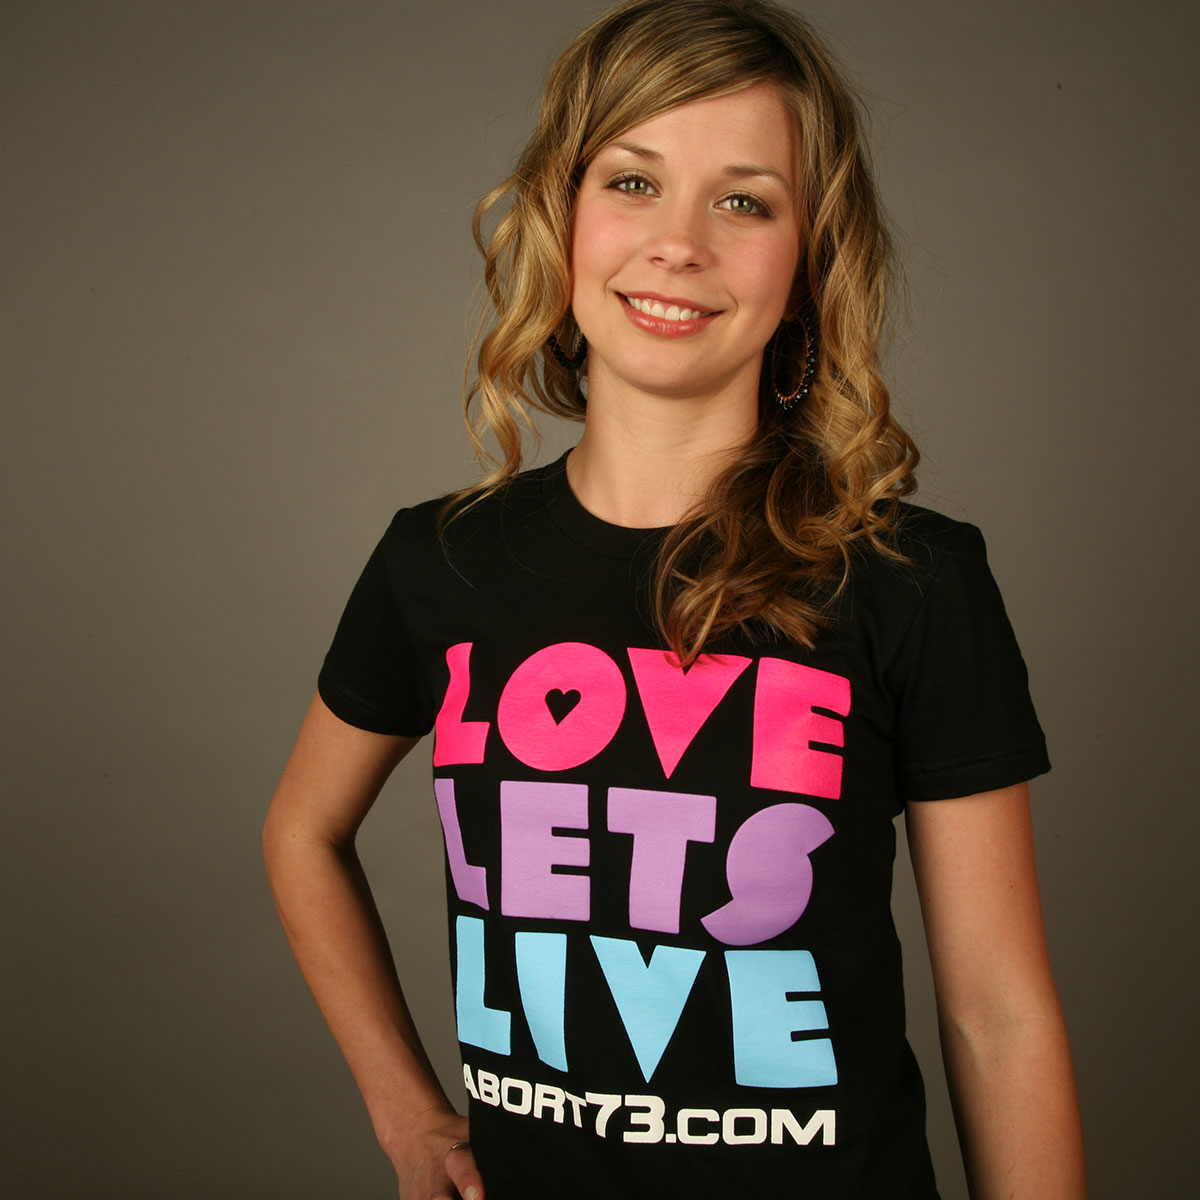 Love Lets Live (Abort73 Girls T-shirt)